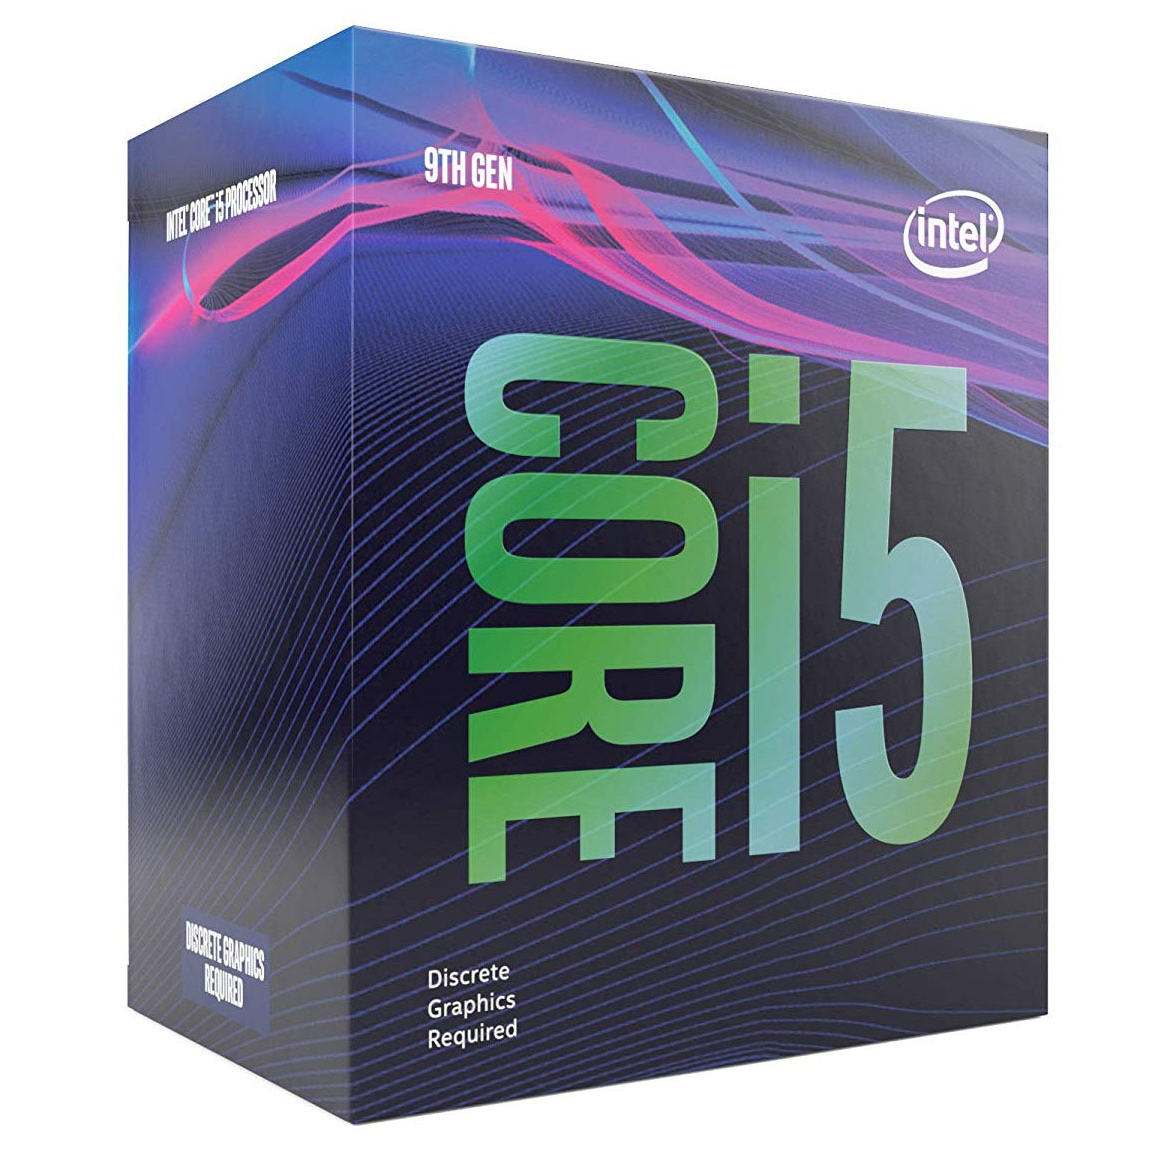 INTEL CORE I5 9400F 2.90GHz 9mb 1151v2 PIN İŞLEMCİ